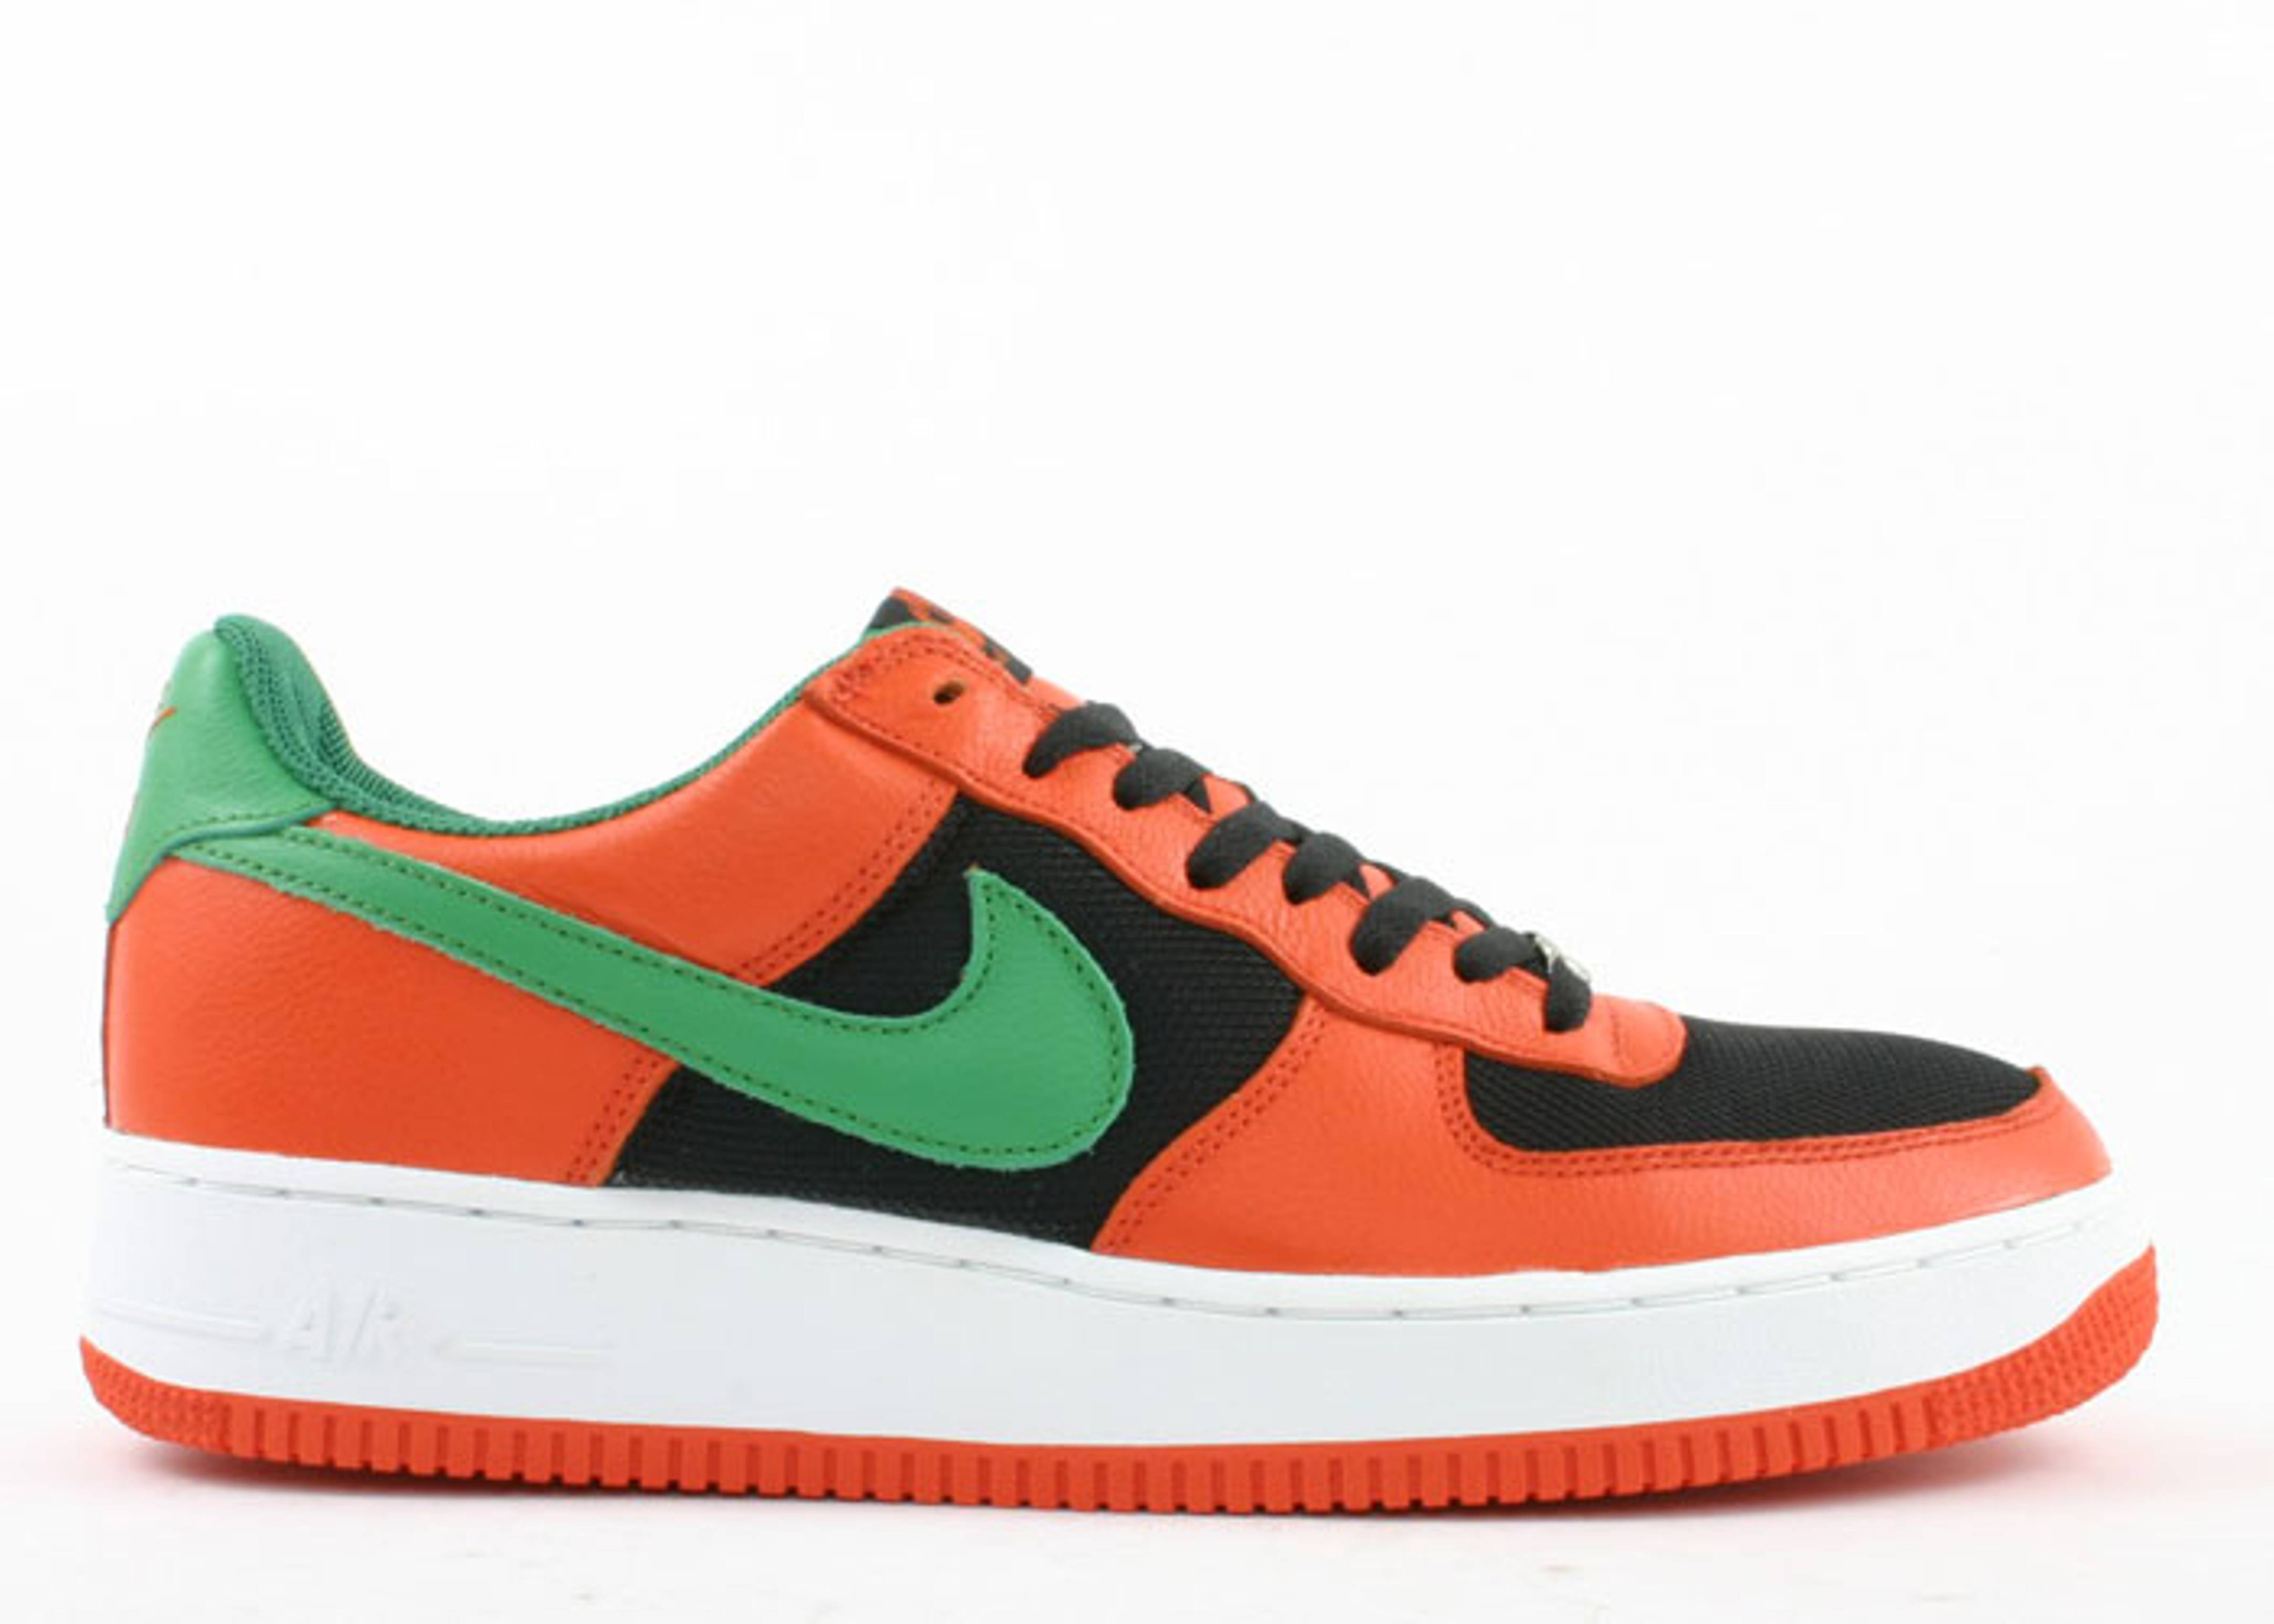 official photos 8a11b 9cfe1 air force 1